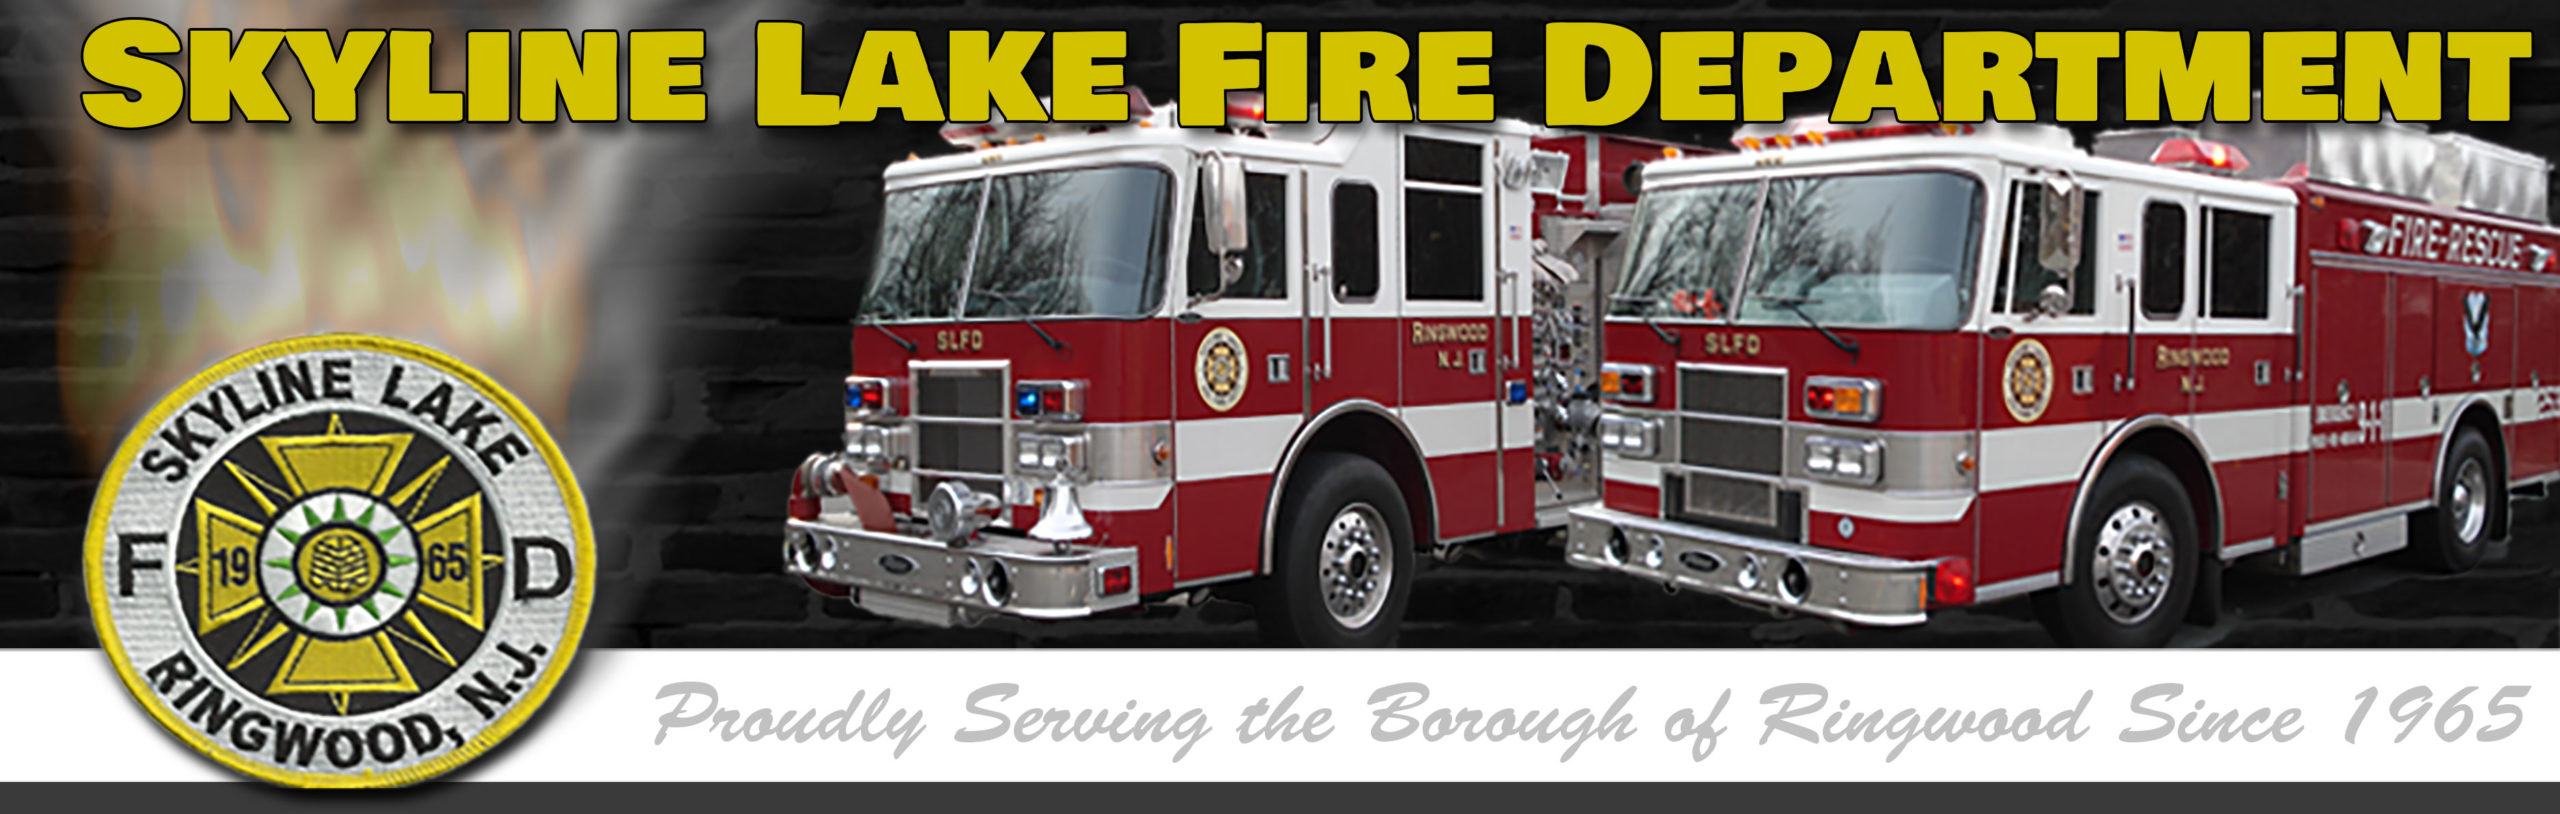 Skyline Lake Fire Department